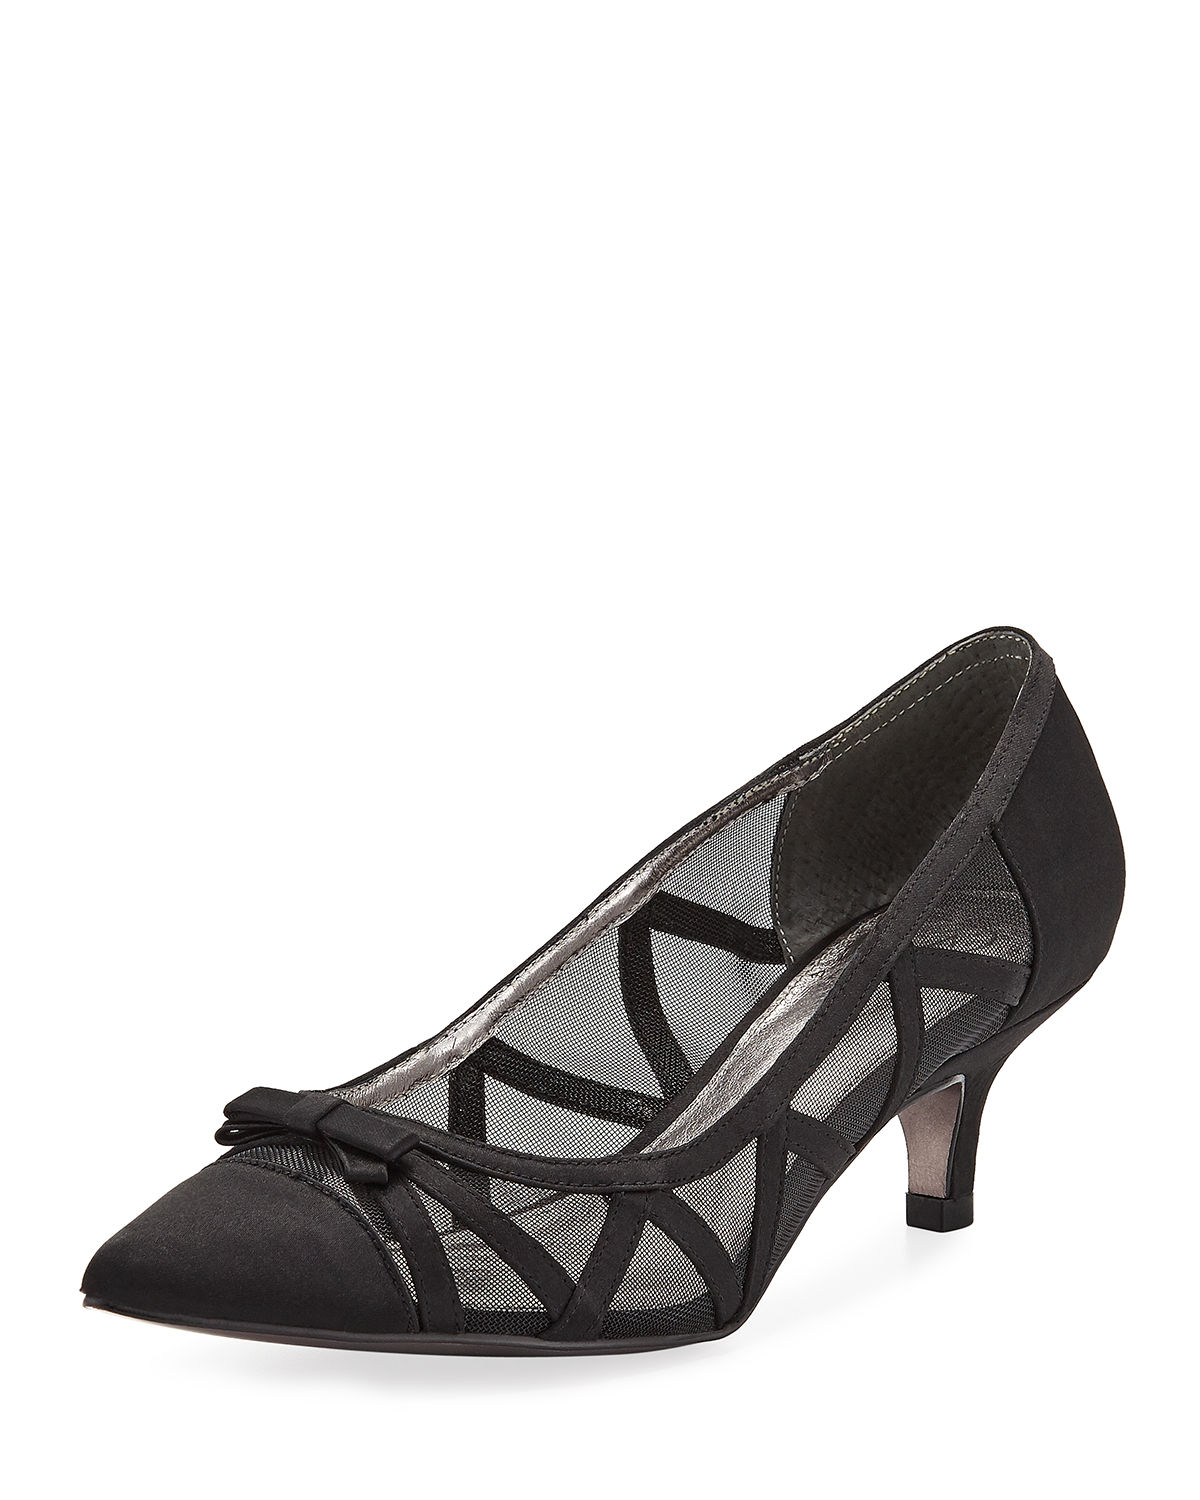 Adrianna Papell LANA POINTED MESH PUMPS